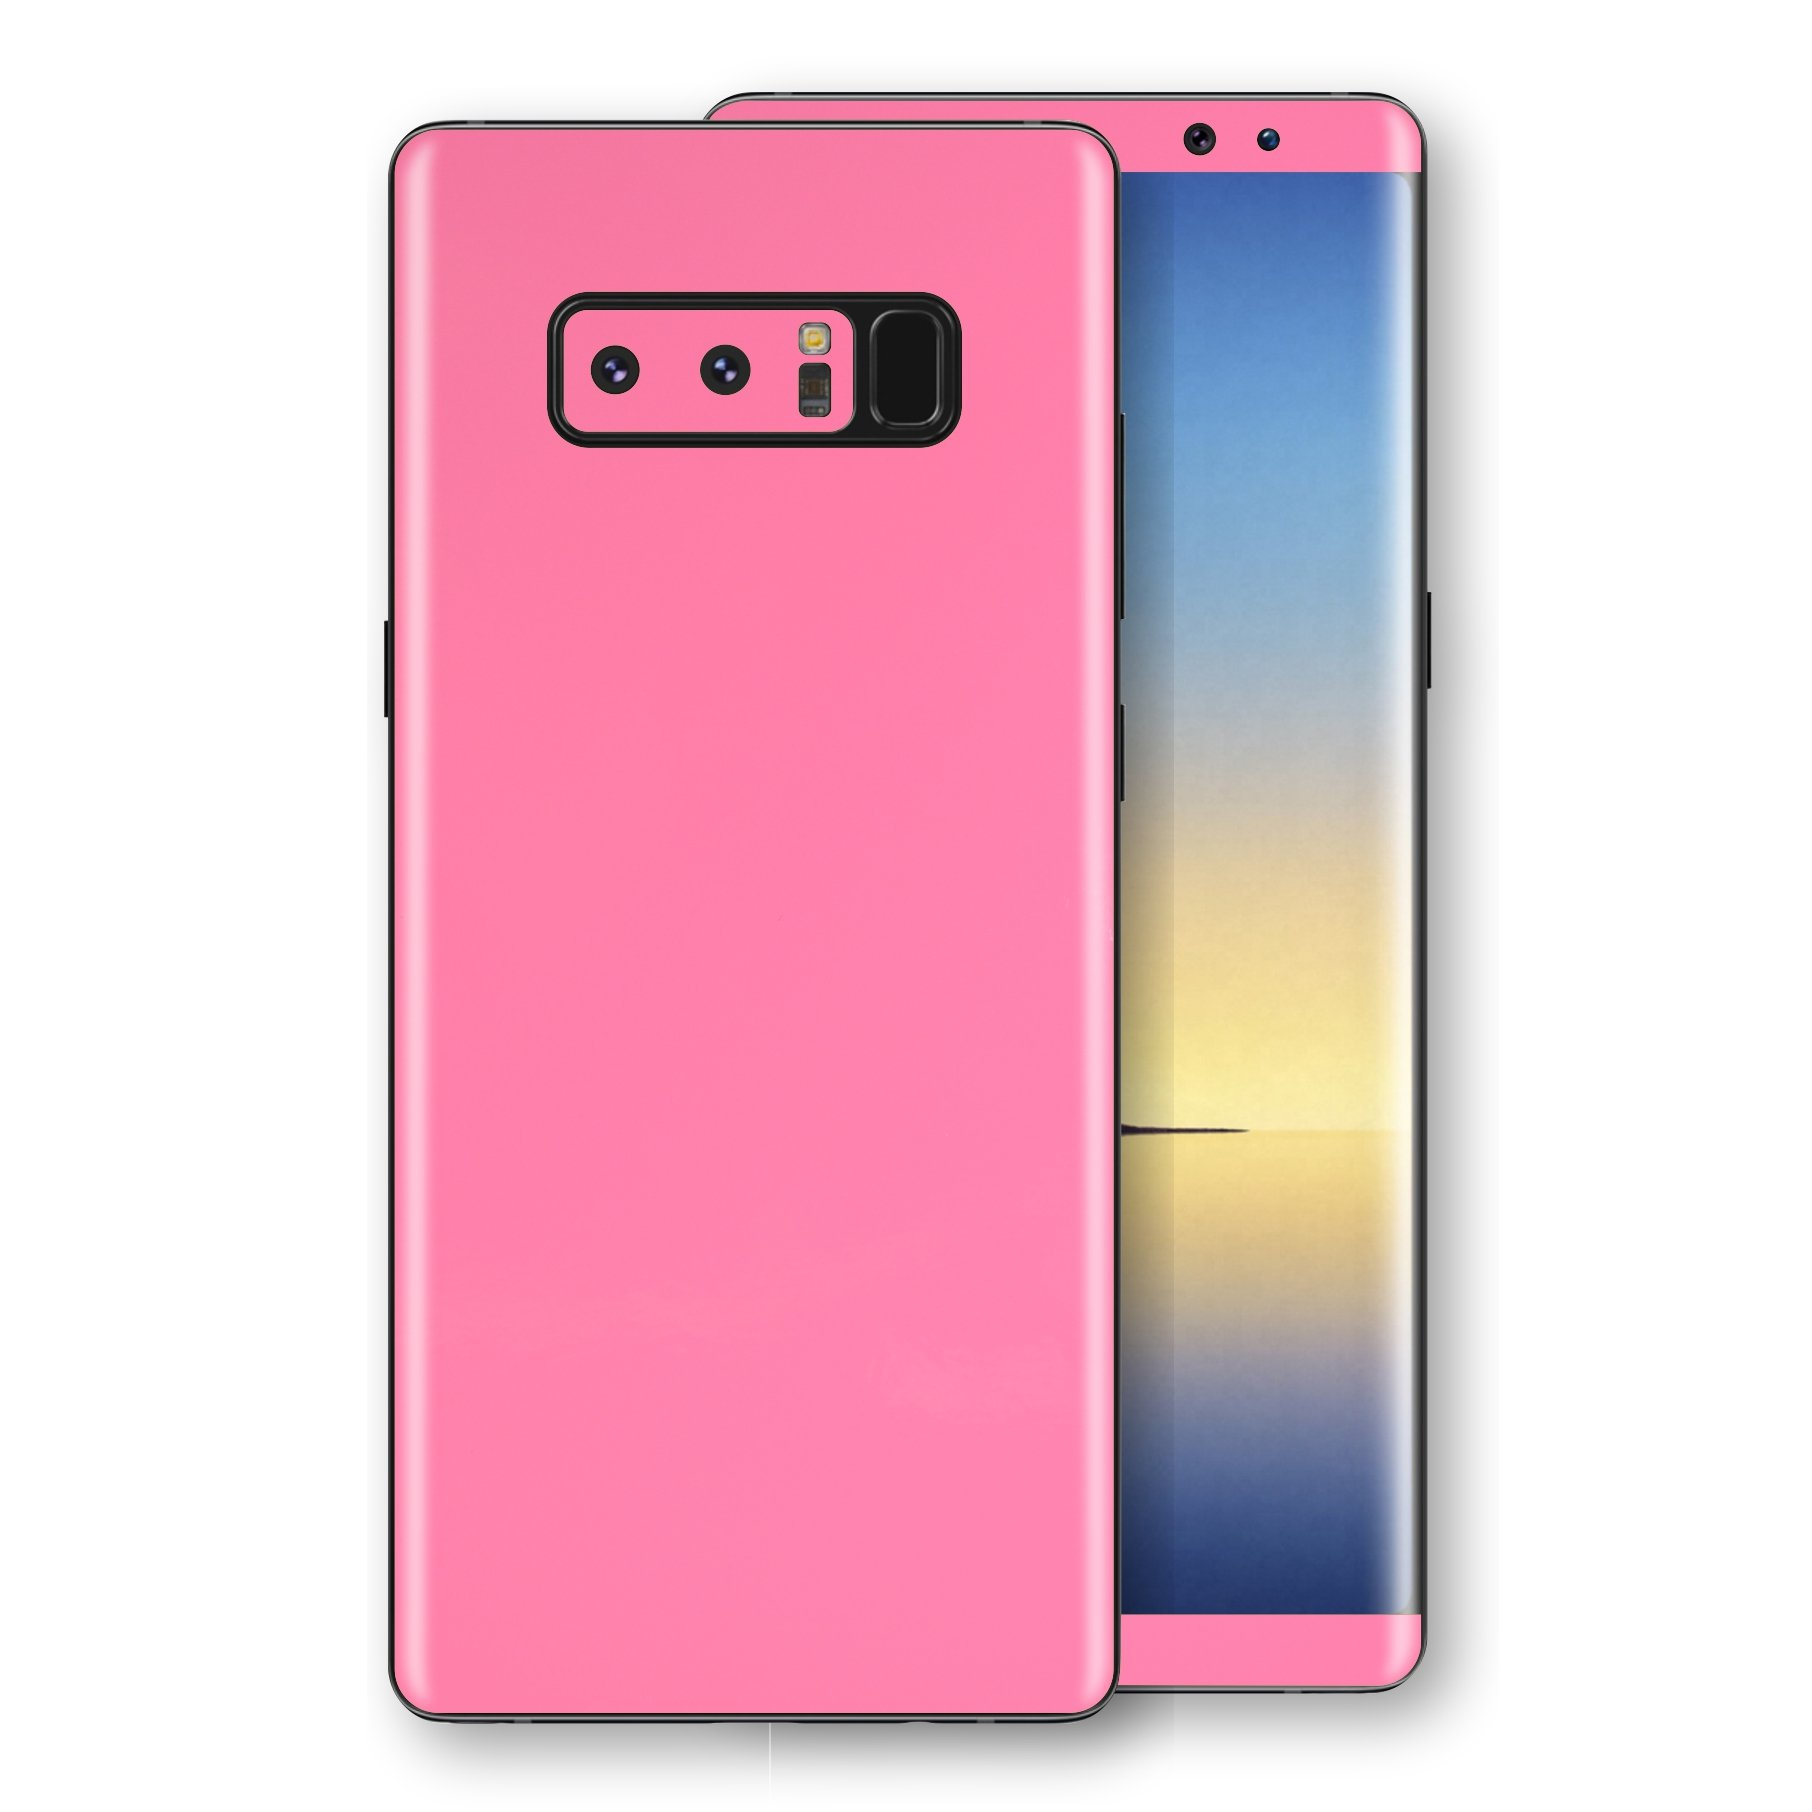 Samsung Galaxy NOTE 8 Hot Pink Glossy Gloss Finish Skin, Decal, Wrap, Protector, Cover by EasySkinz | EasySkinz.com